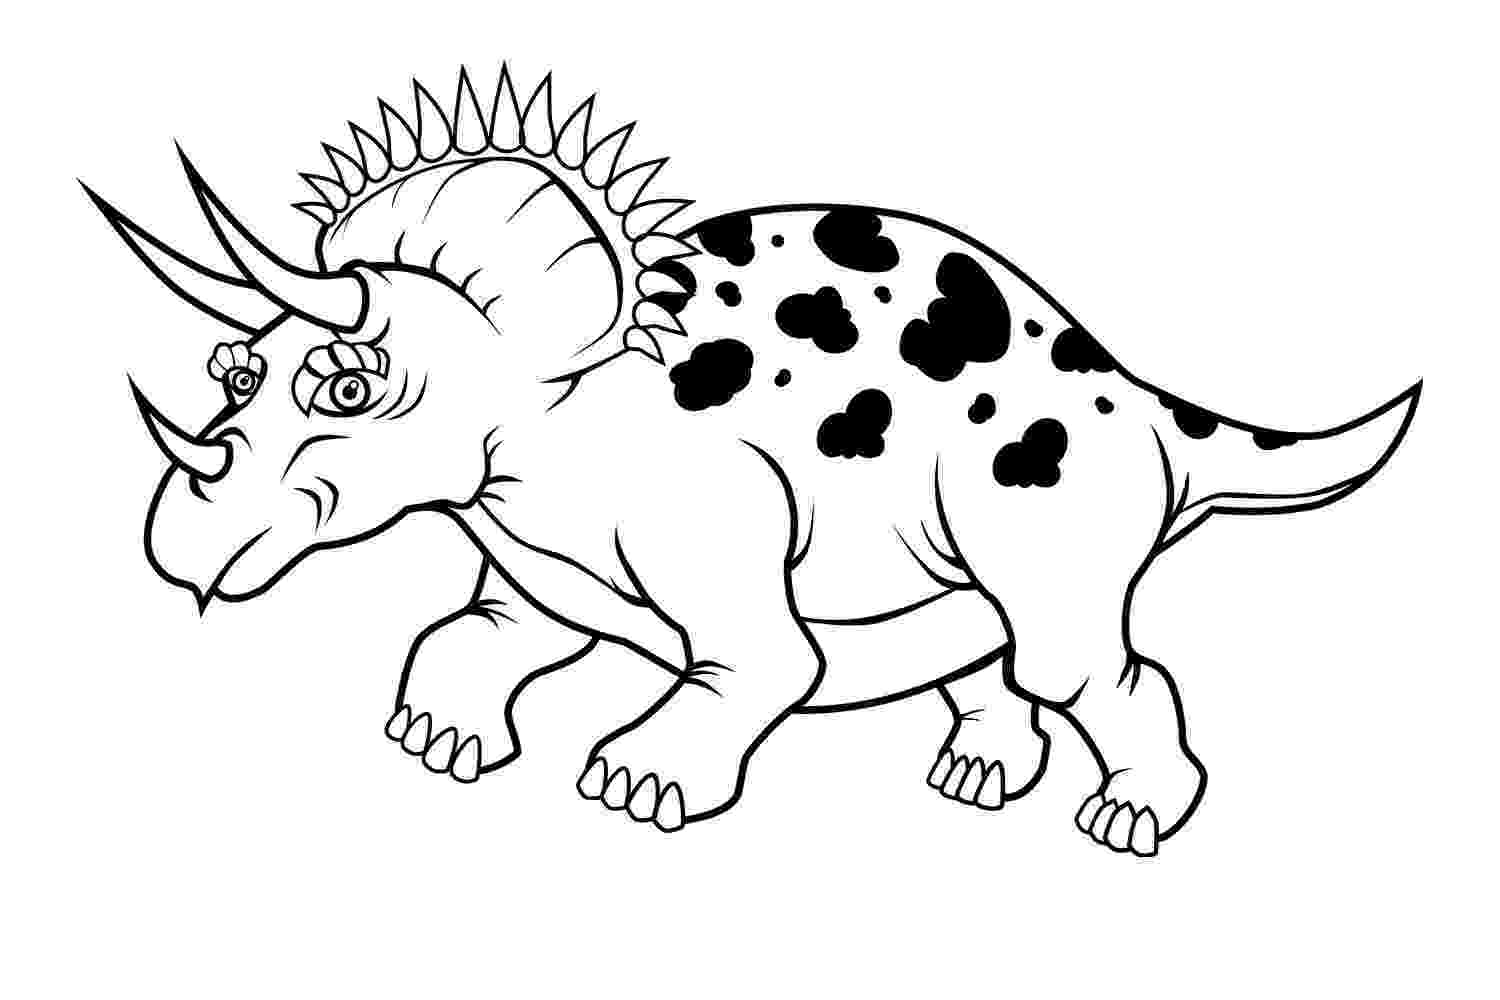 triceratops coloring pages triceratops dinosaur coloring pages for kids printable pages triceratops coloring